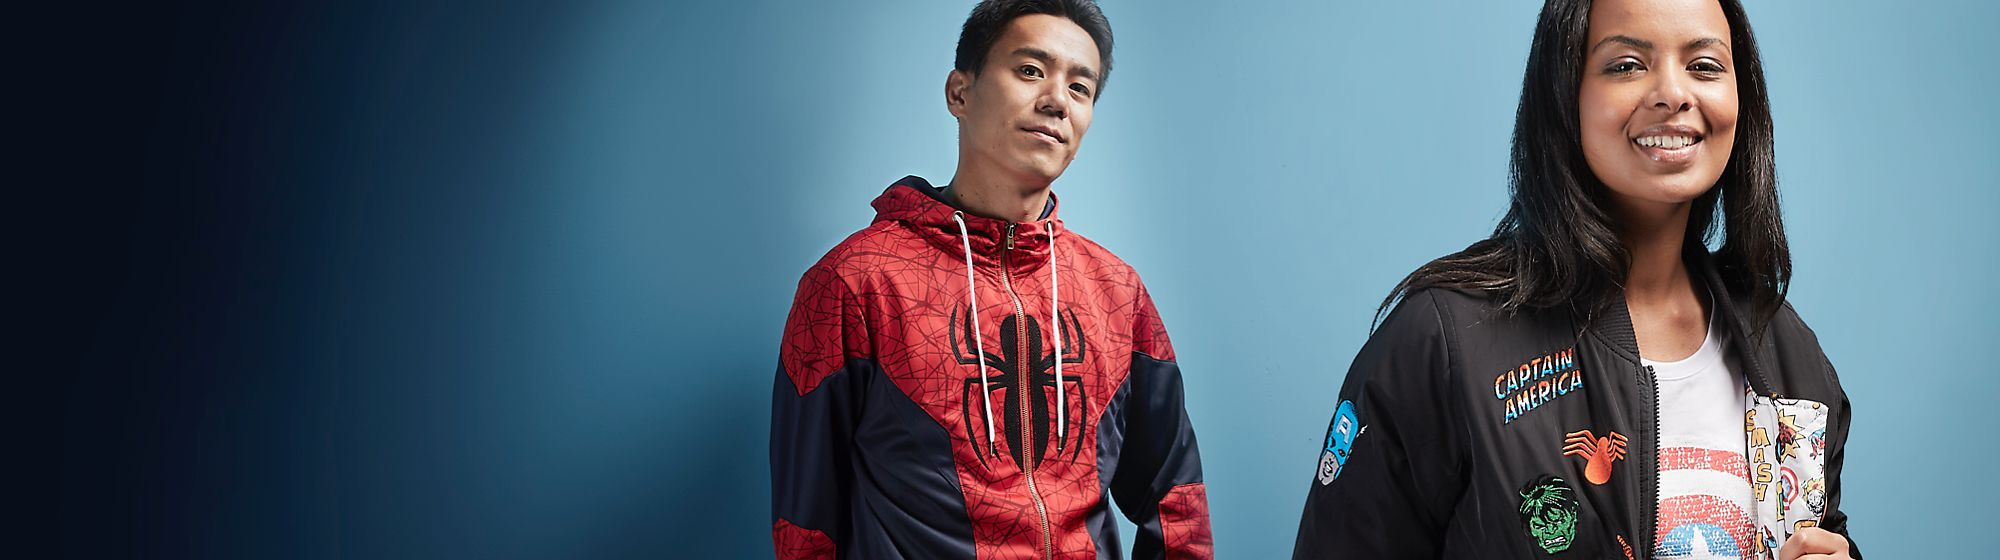 Marvel Clothing Heroes assemble! Marvel clothing from across the universe for superheroes from every galaxy